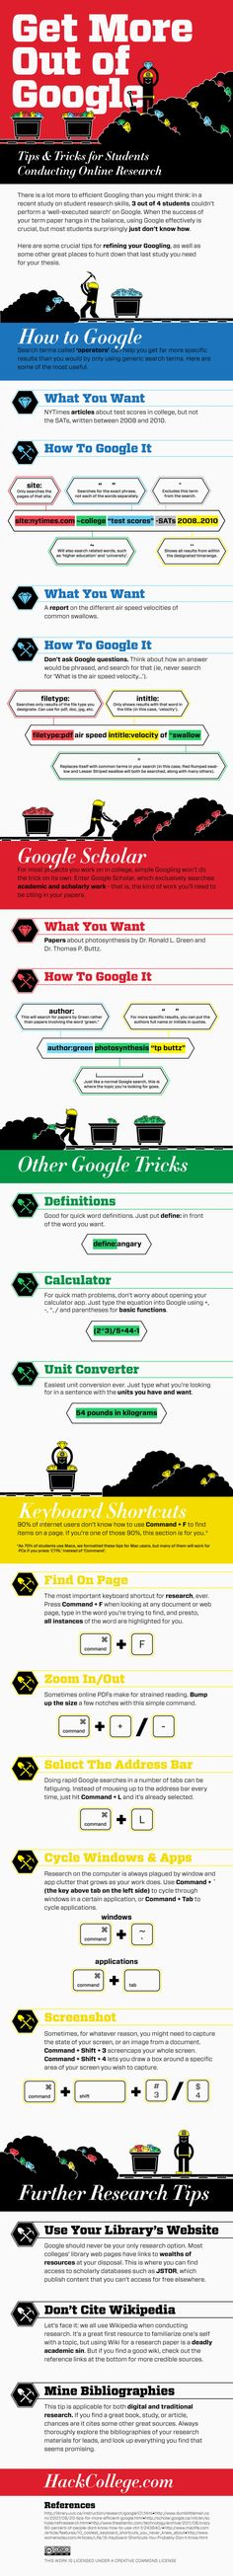 How To Get More Out Of Google  Infographic